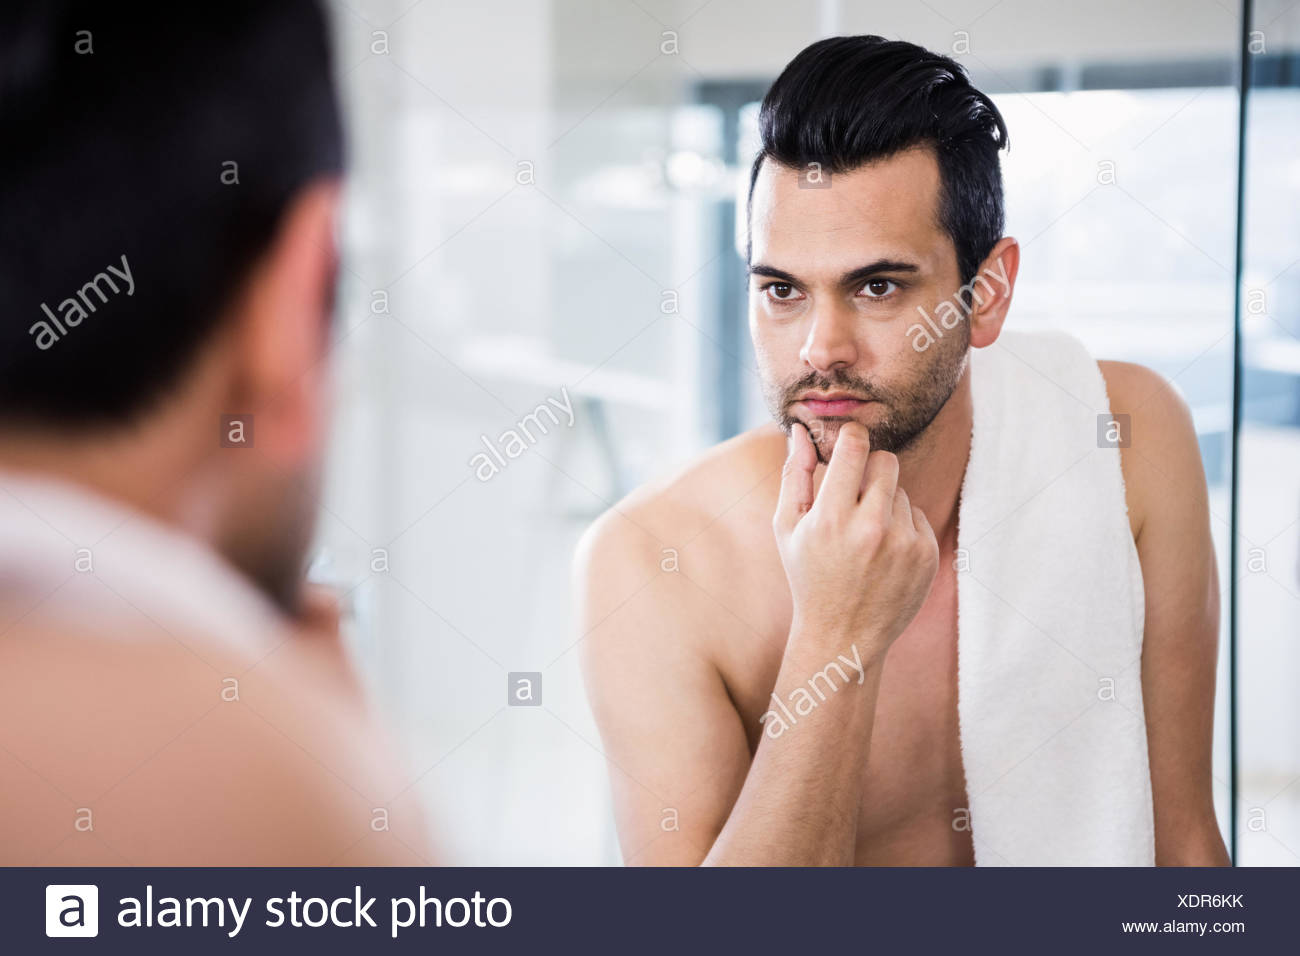 handsome man looking in mirror stock photo 283866567 alamy